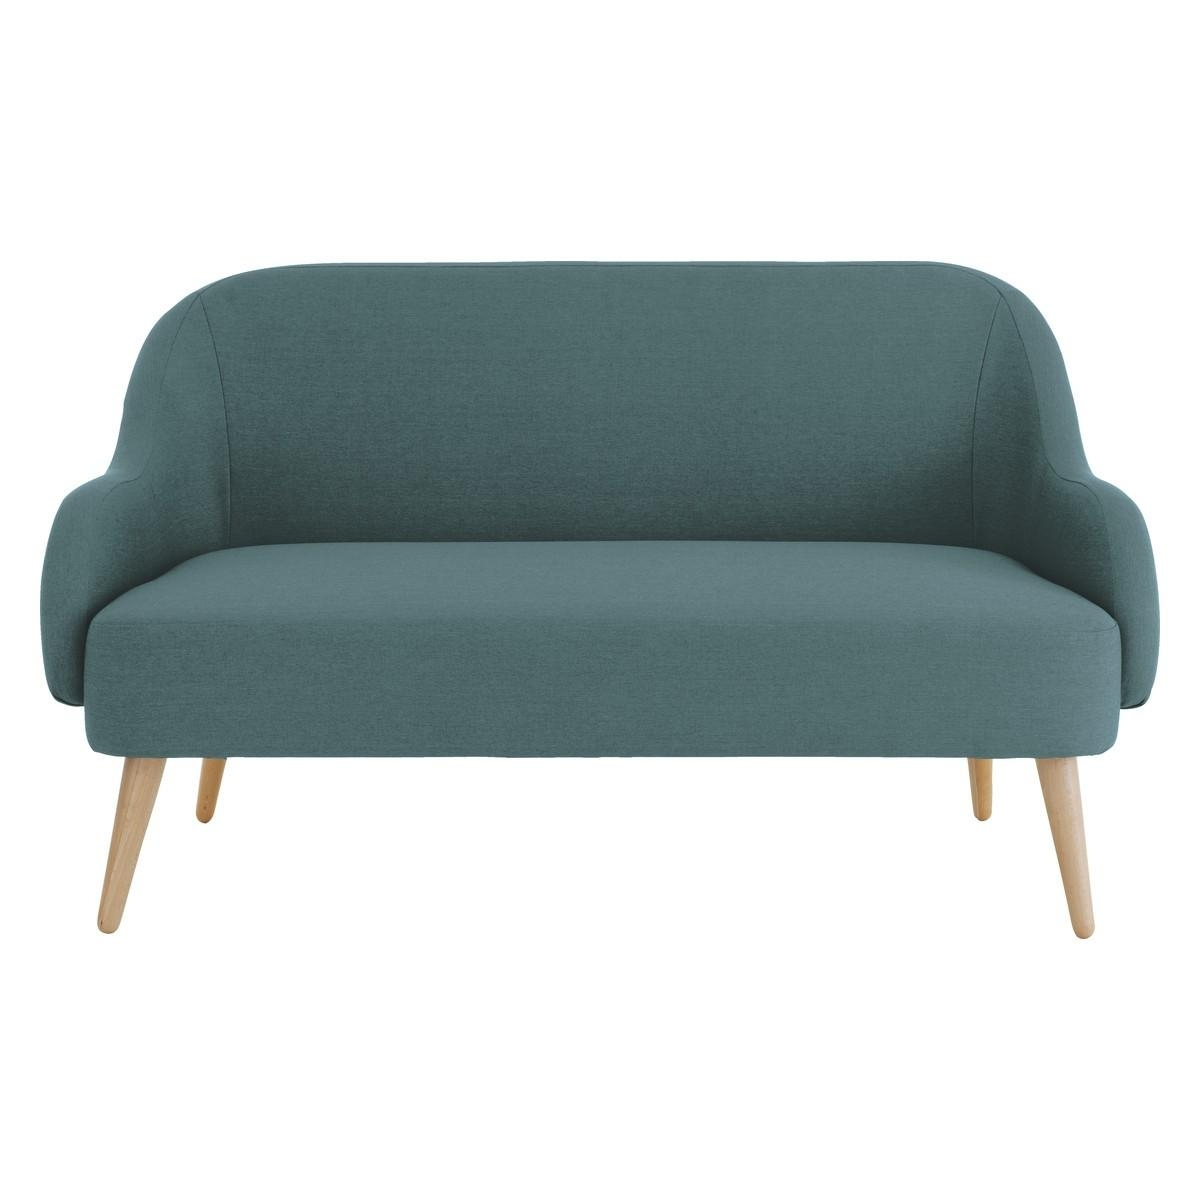 Momo Teal Blue Fabric 2 Seater Sofa | Buy Now At Habitat Uk For Two Seater Sofas (View 7 of 20)